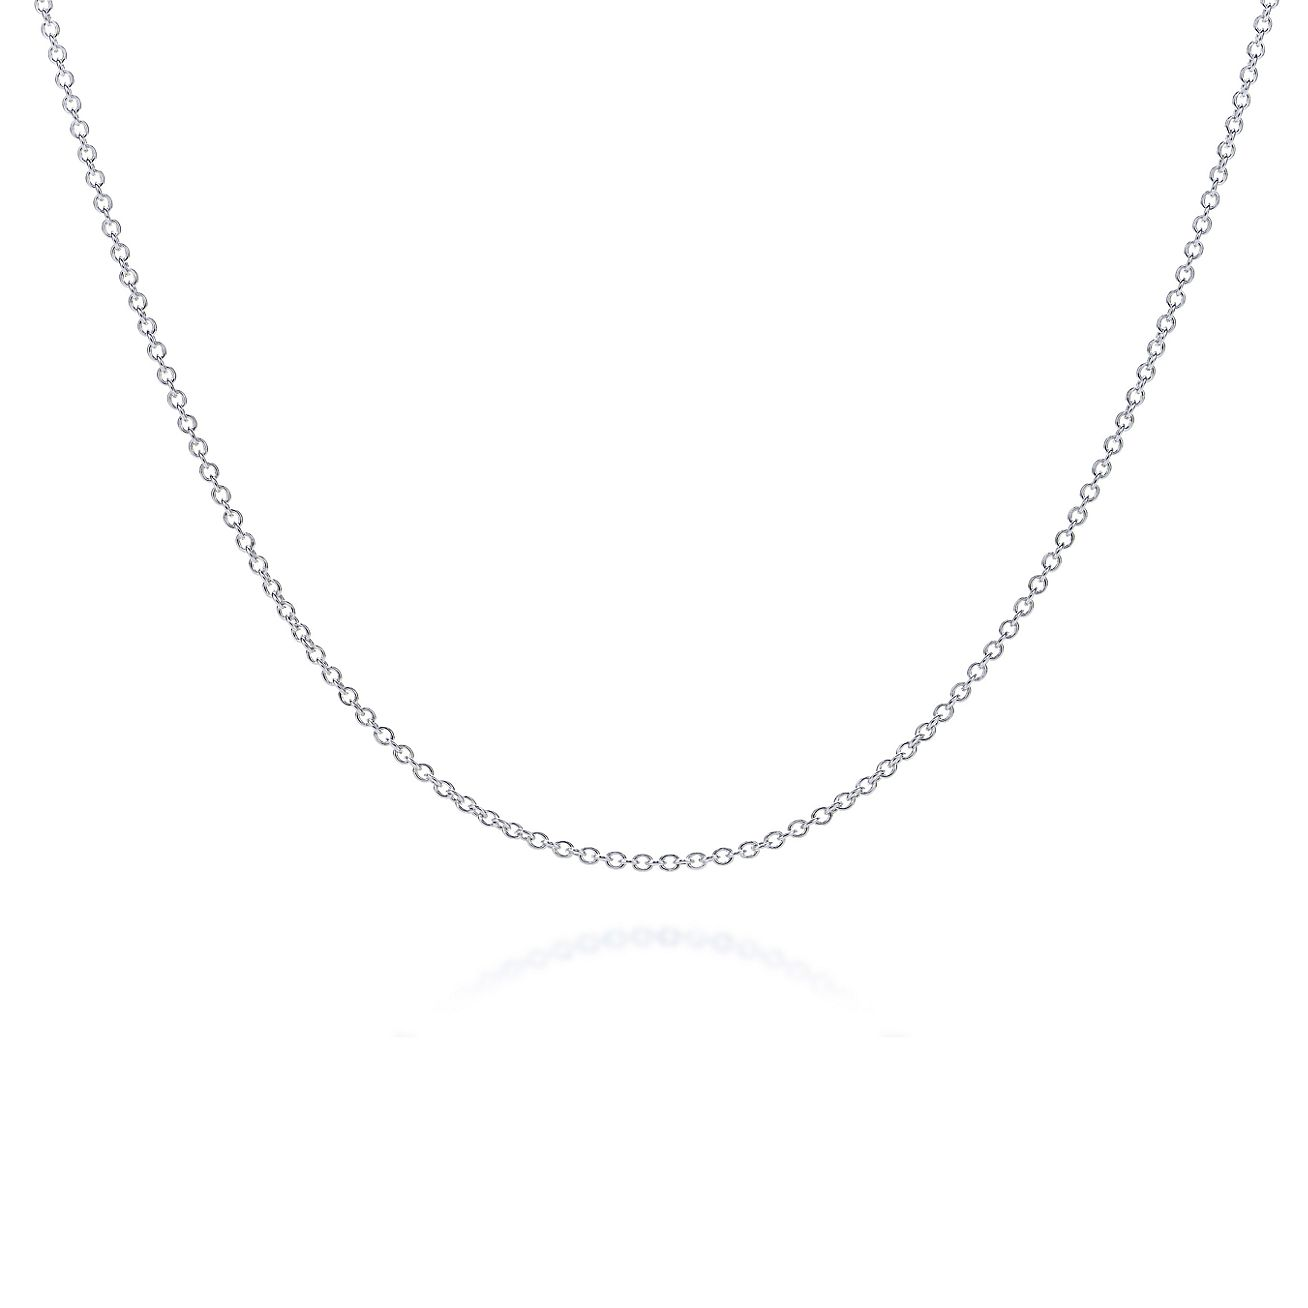 com web chain chains silver pendant plain short